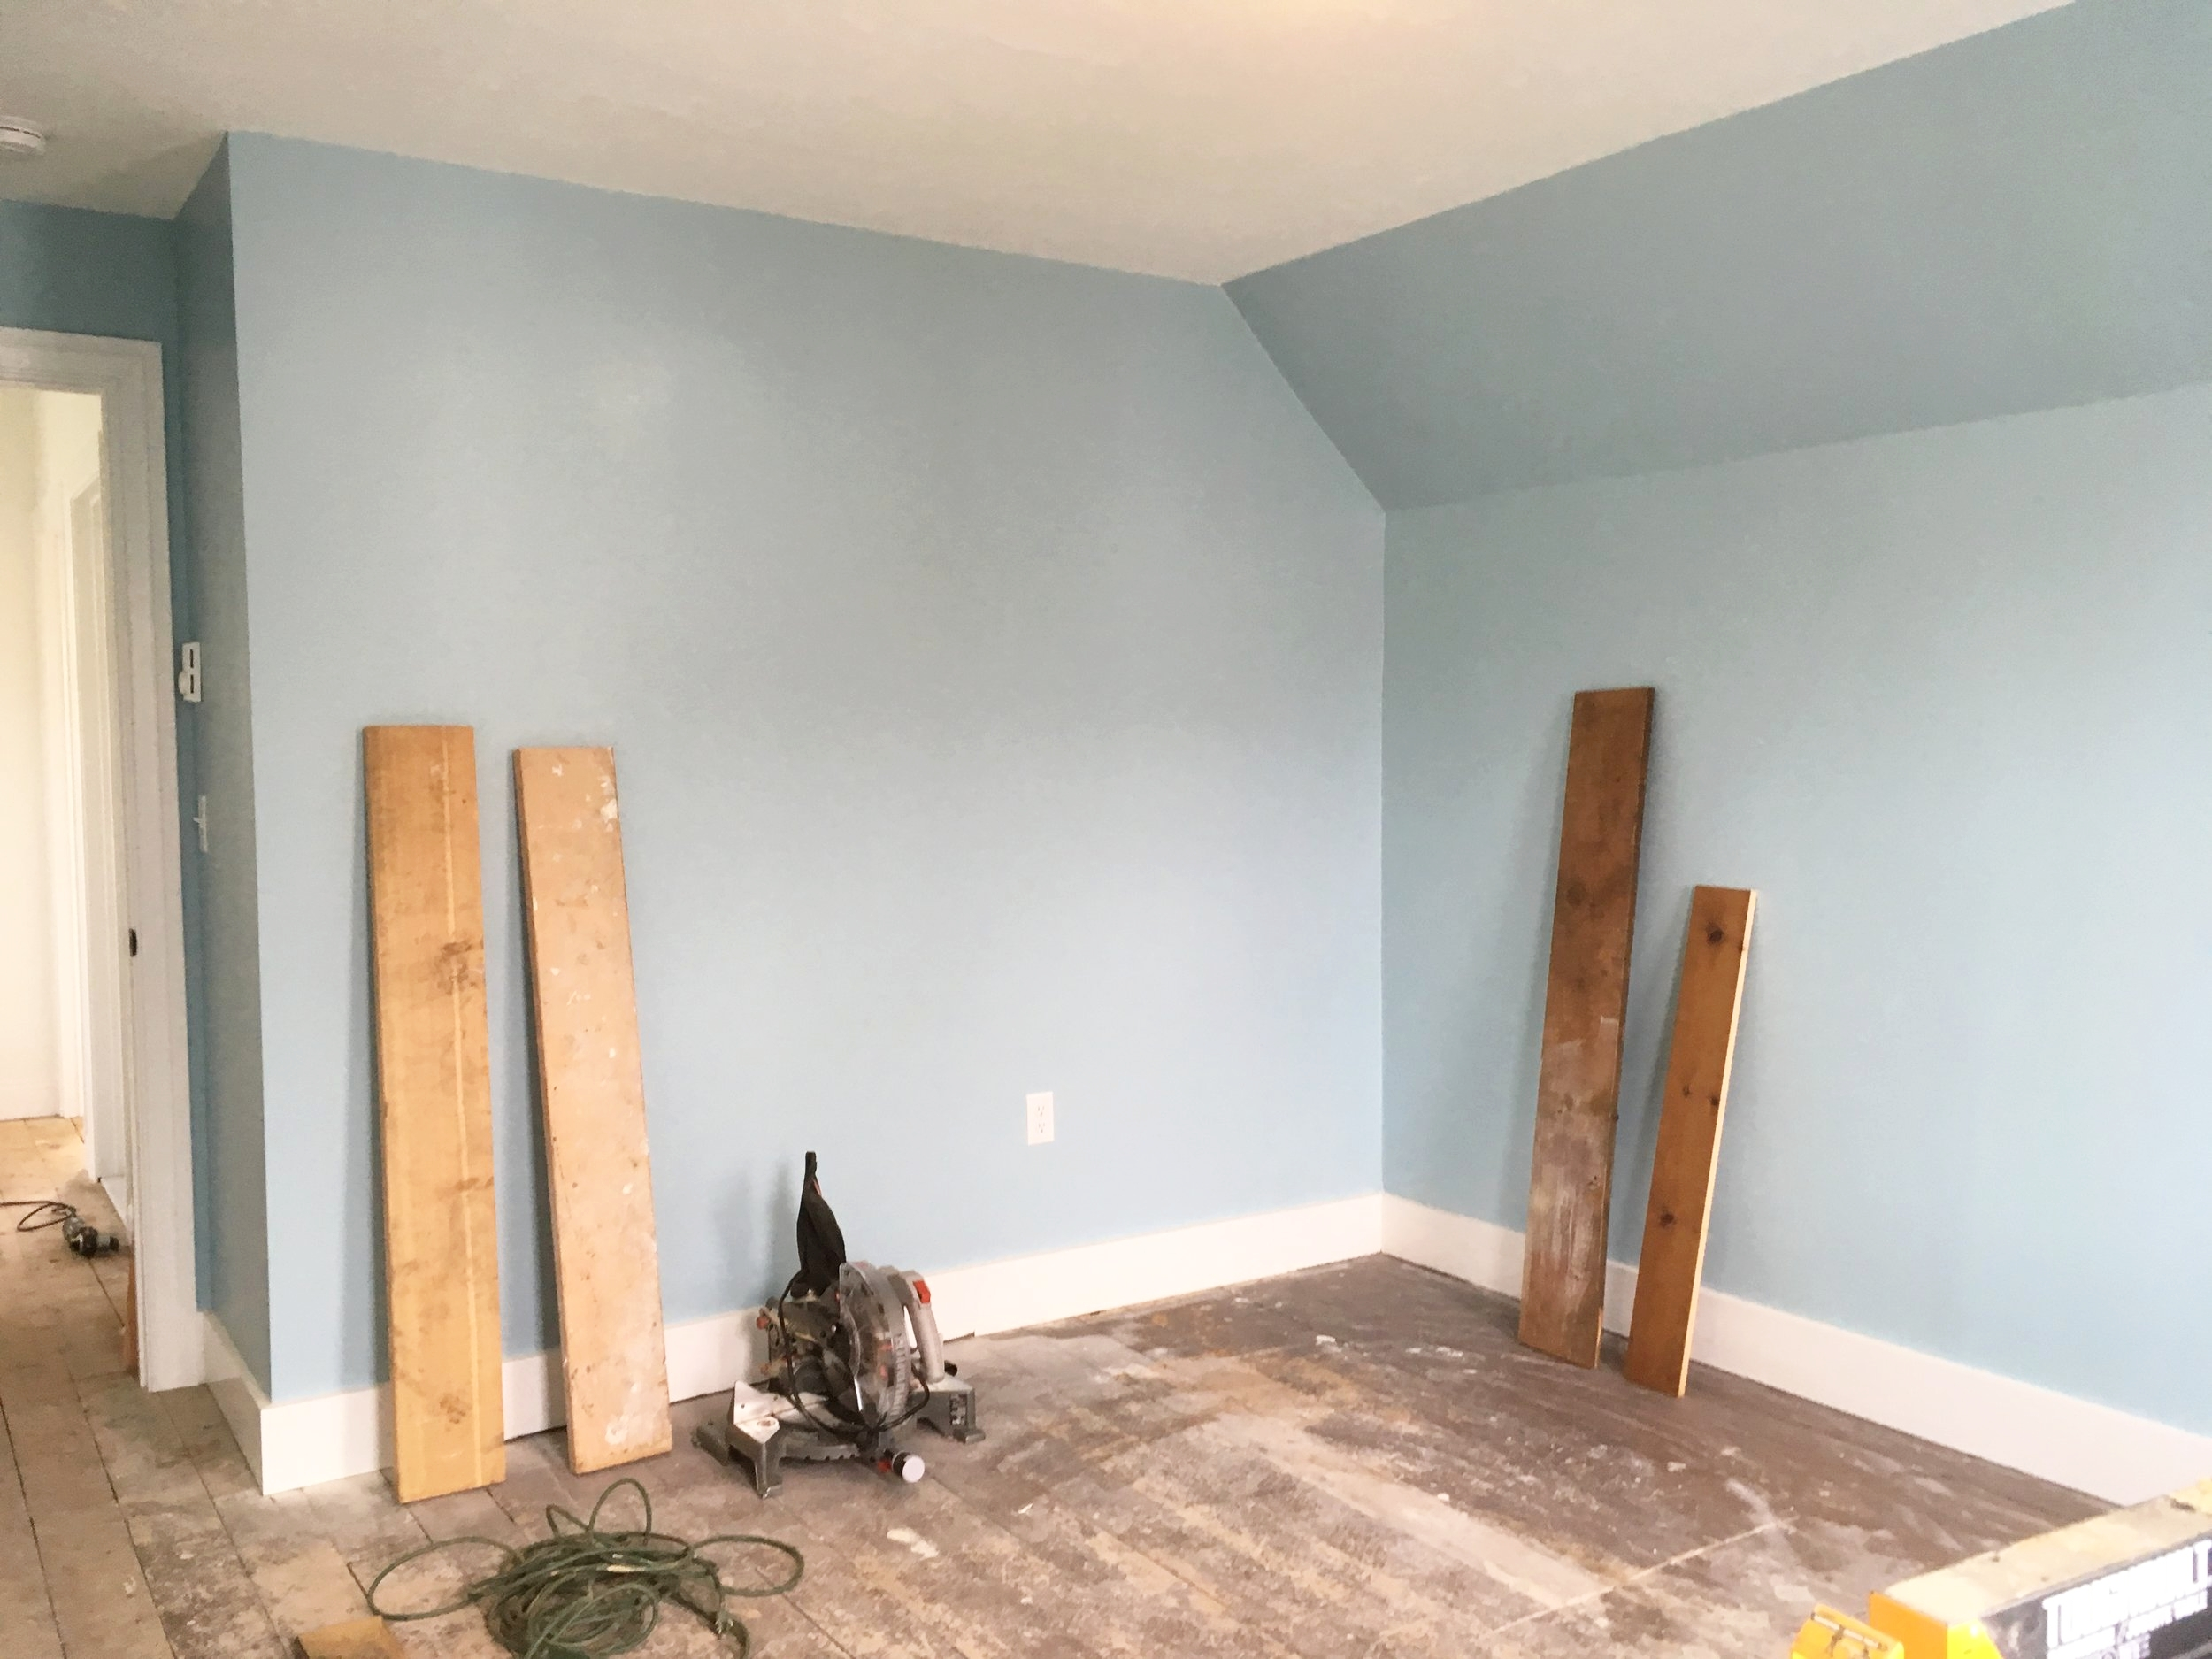 The guest room floor boards were painted at some point over the years, perhaps even as early as the 1940s. Stripping the paint to expose the original pine finish would prove to be a time consuming challenge but well worth it.